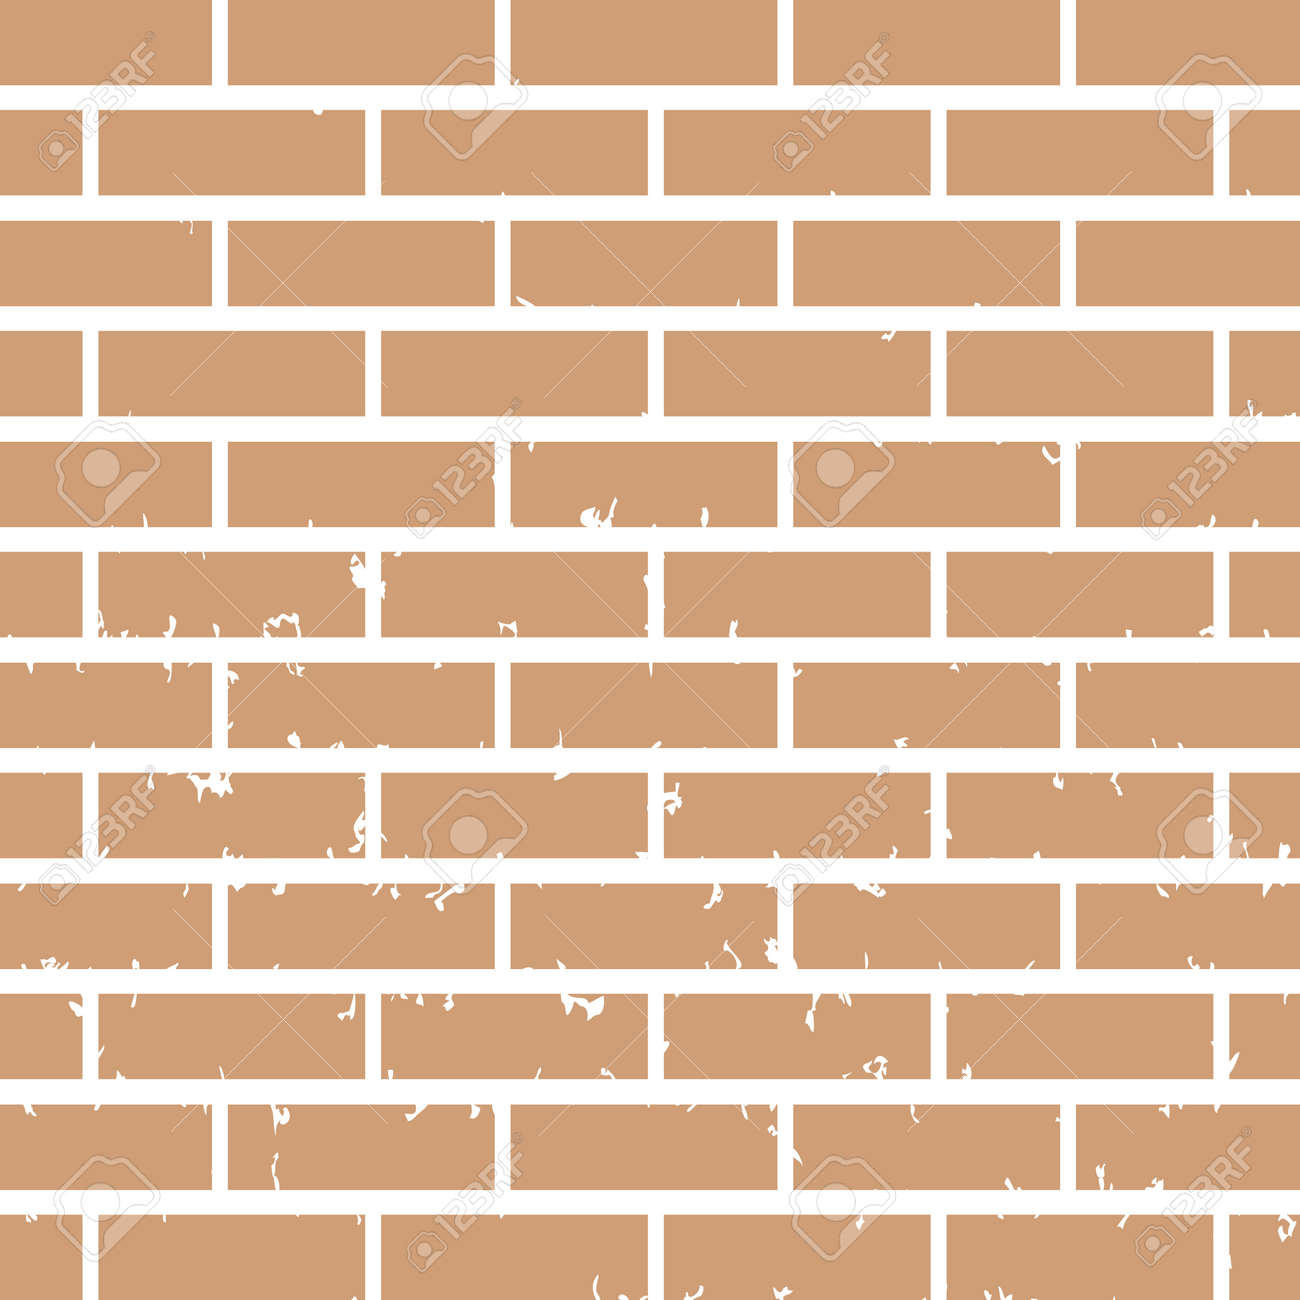 Red Brick Wall Clipart Free Stock Photo - Public Domain Pictures